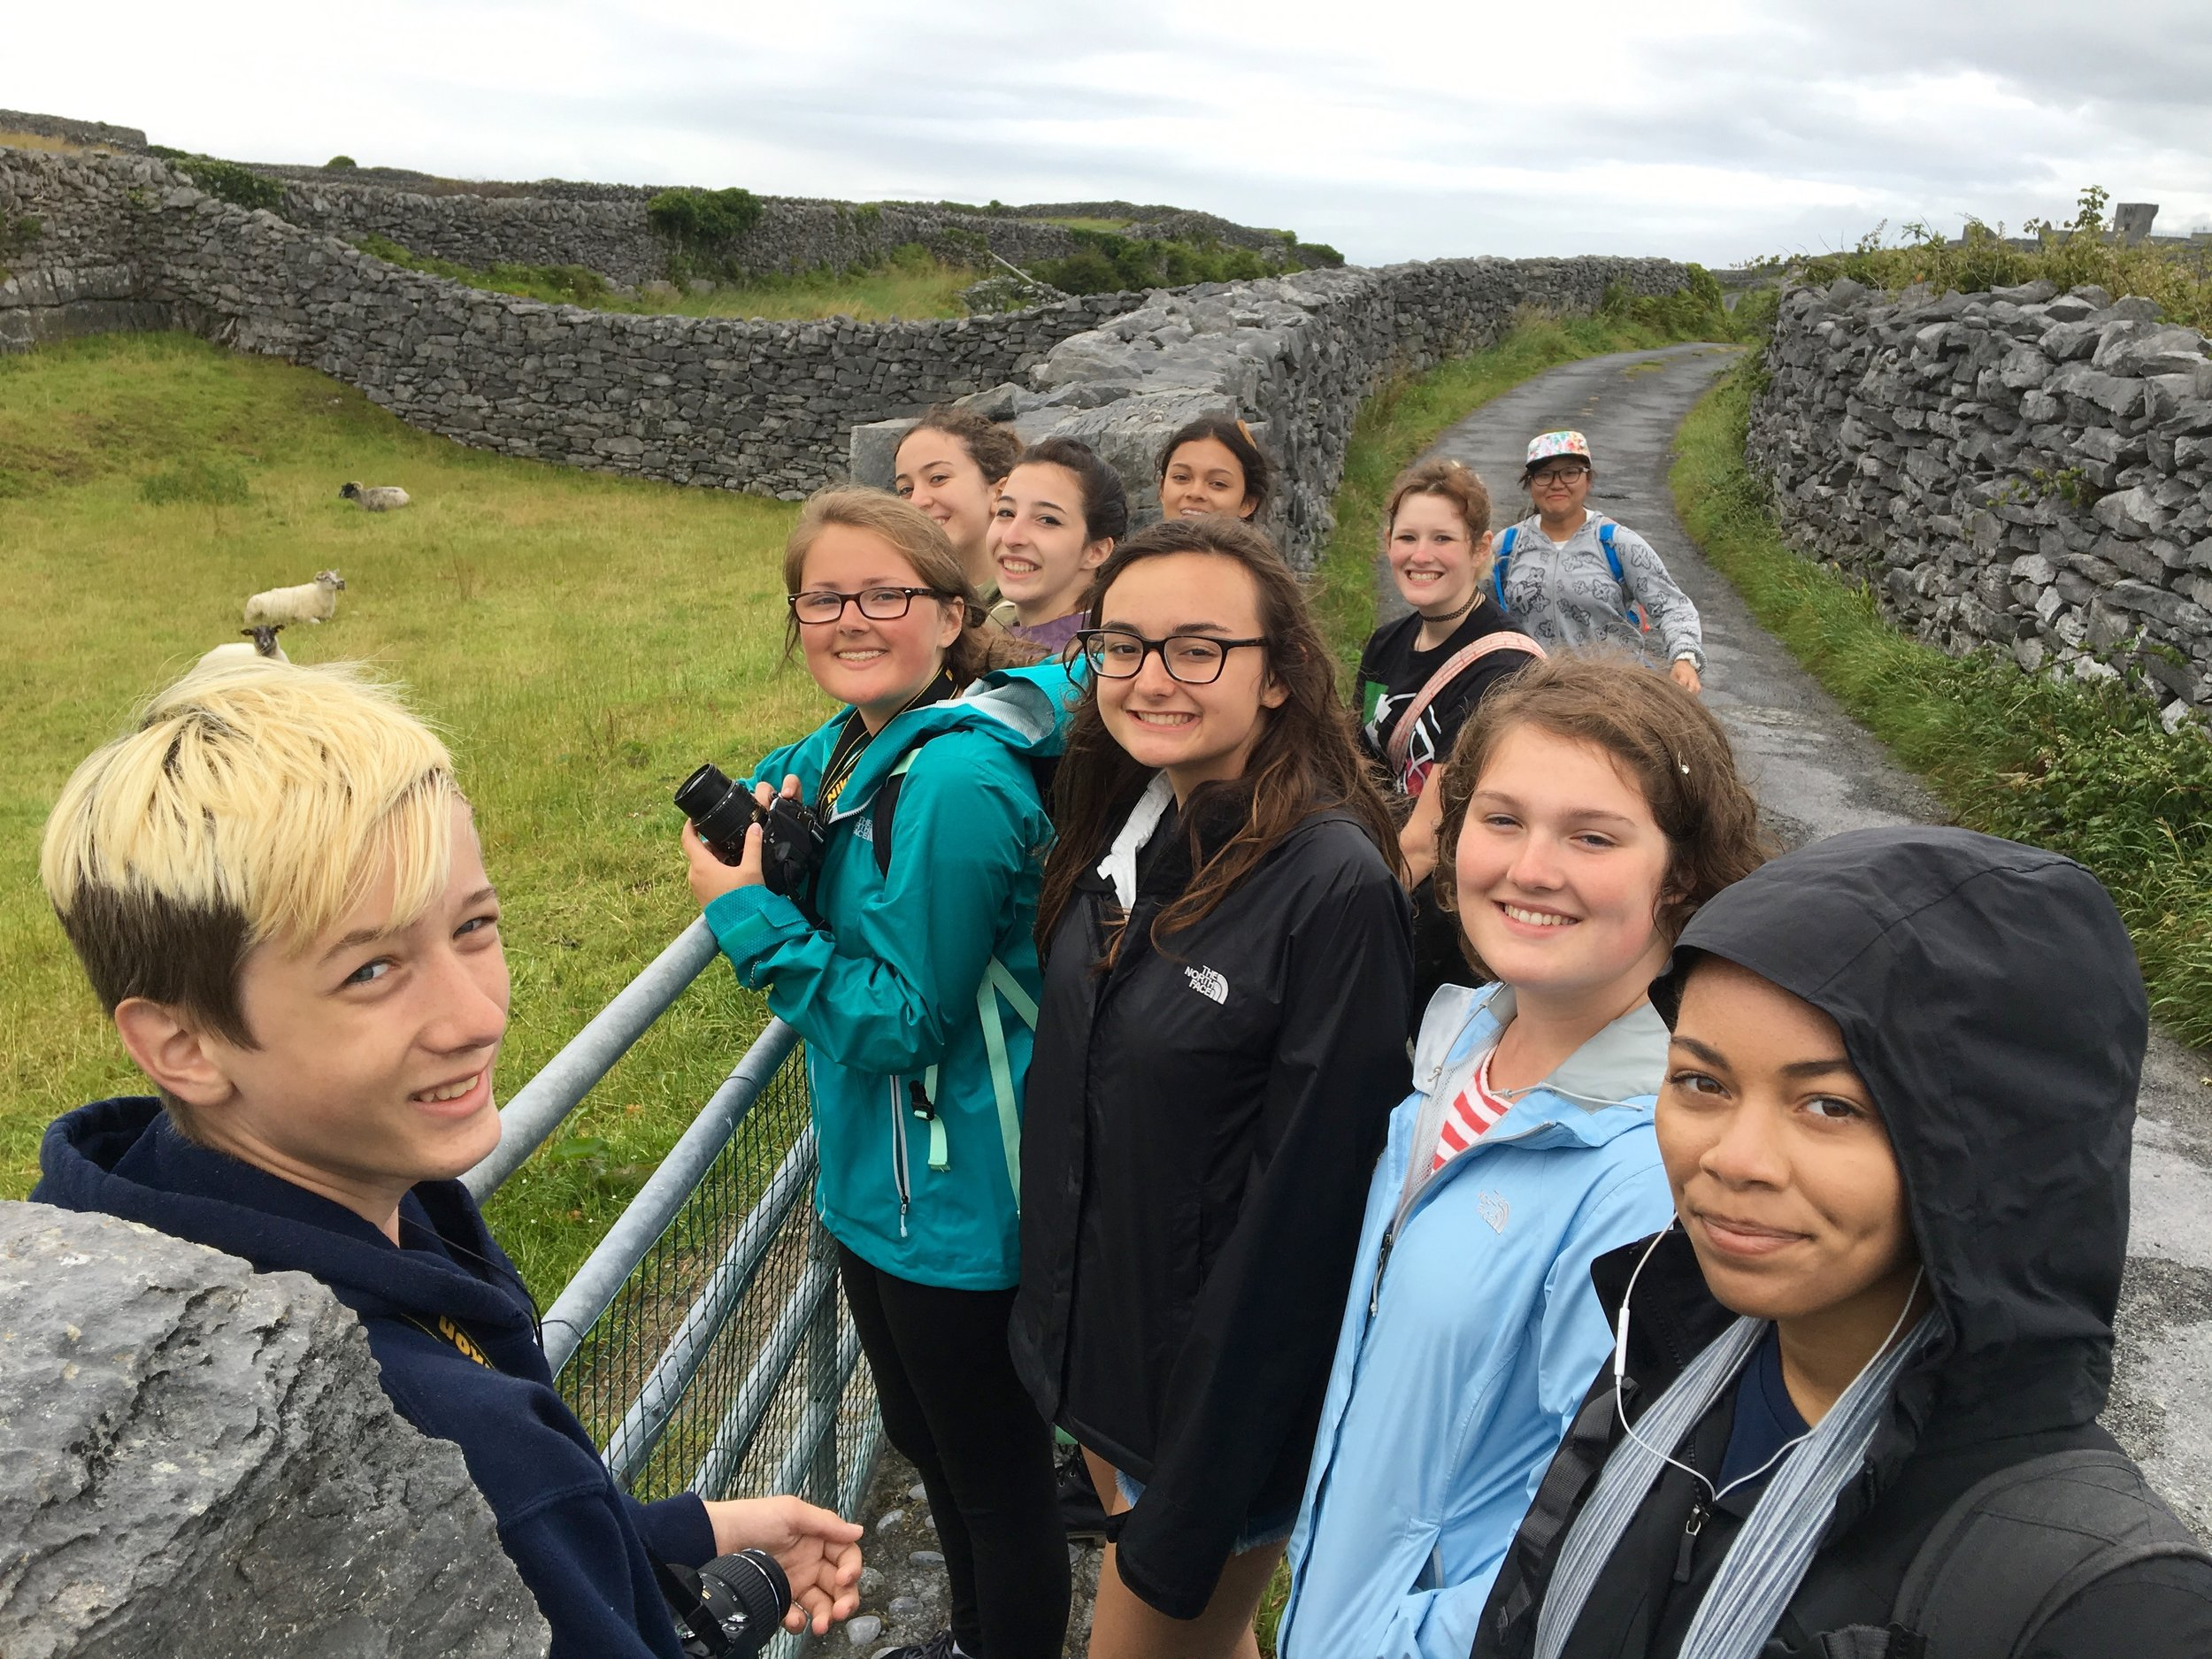 A few of my lucky students, observing sheep on the isle of Inis Oírr (Photo by Andrew Evans)